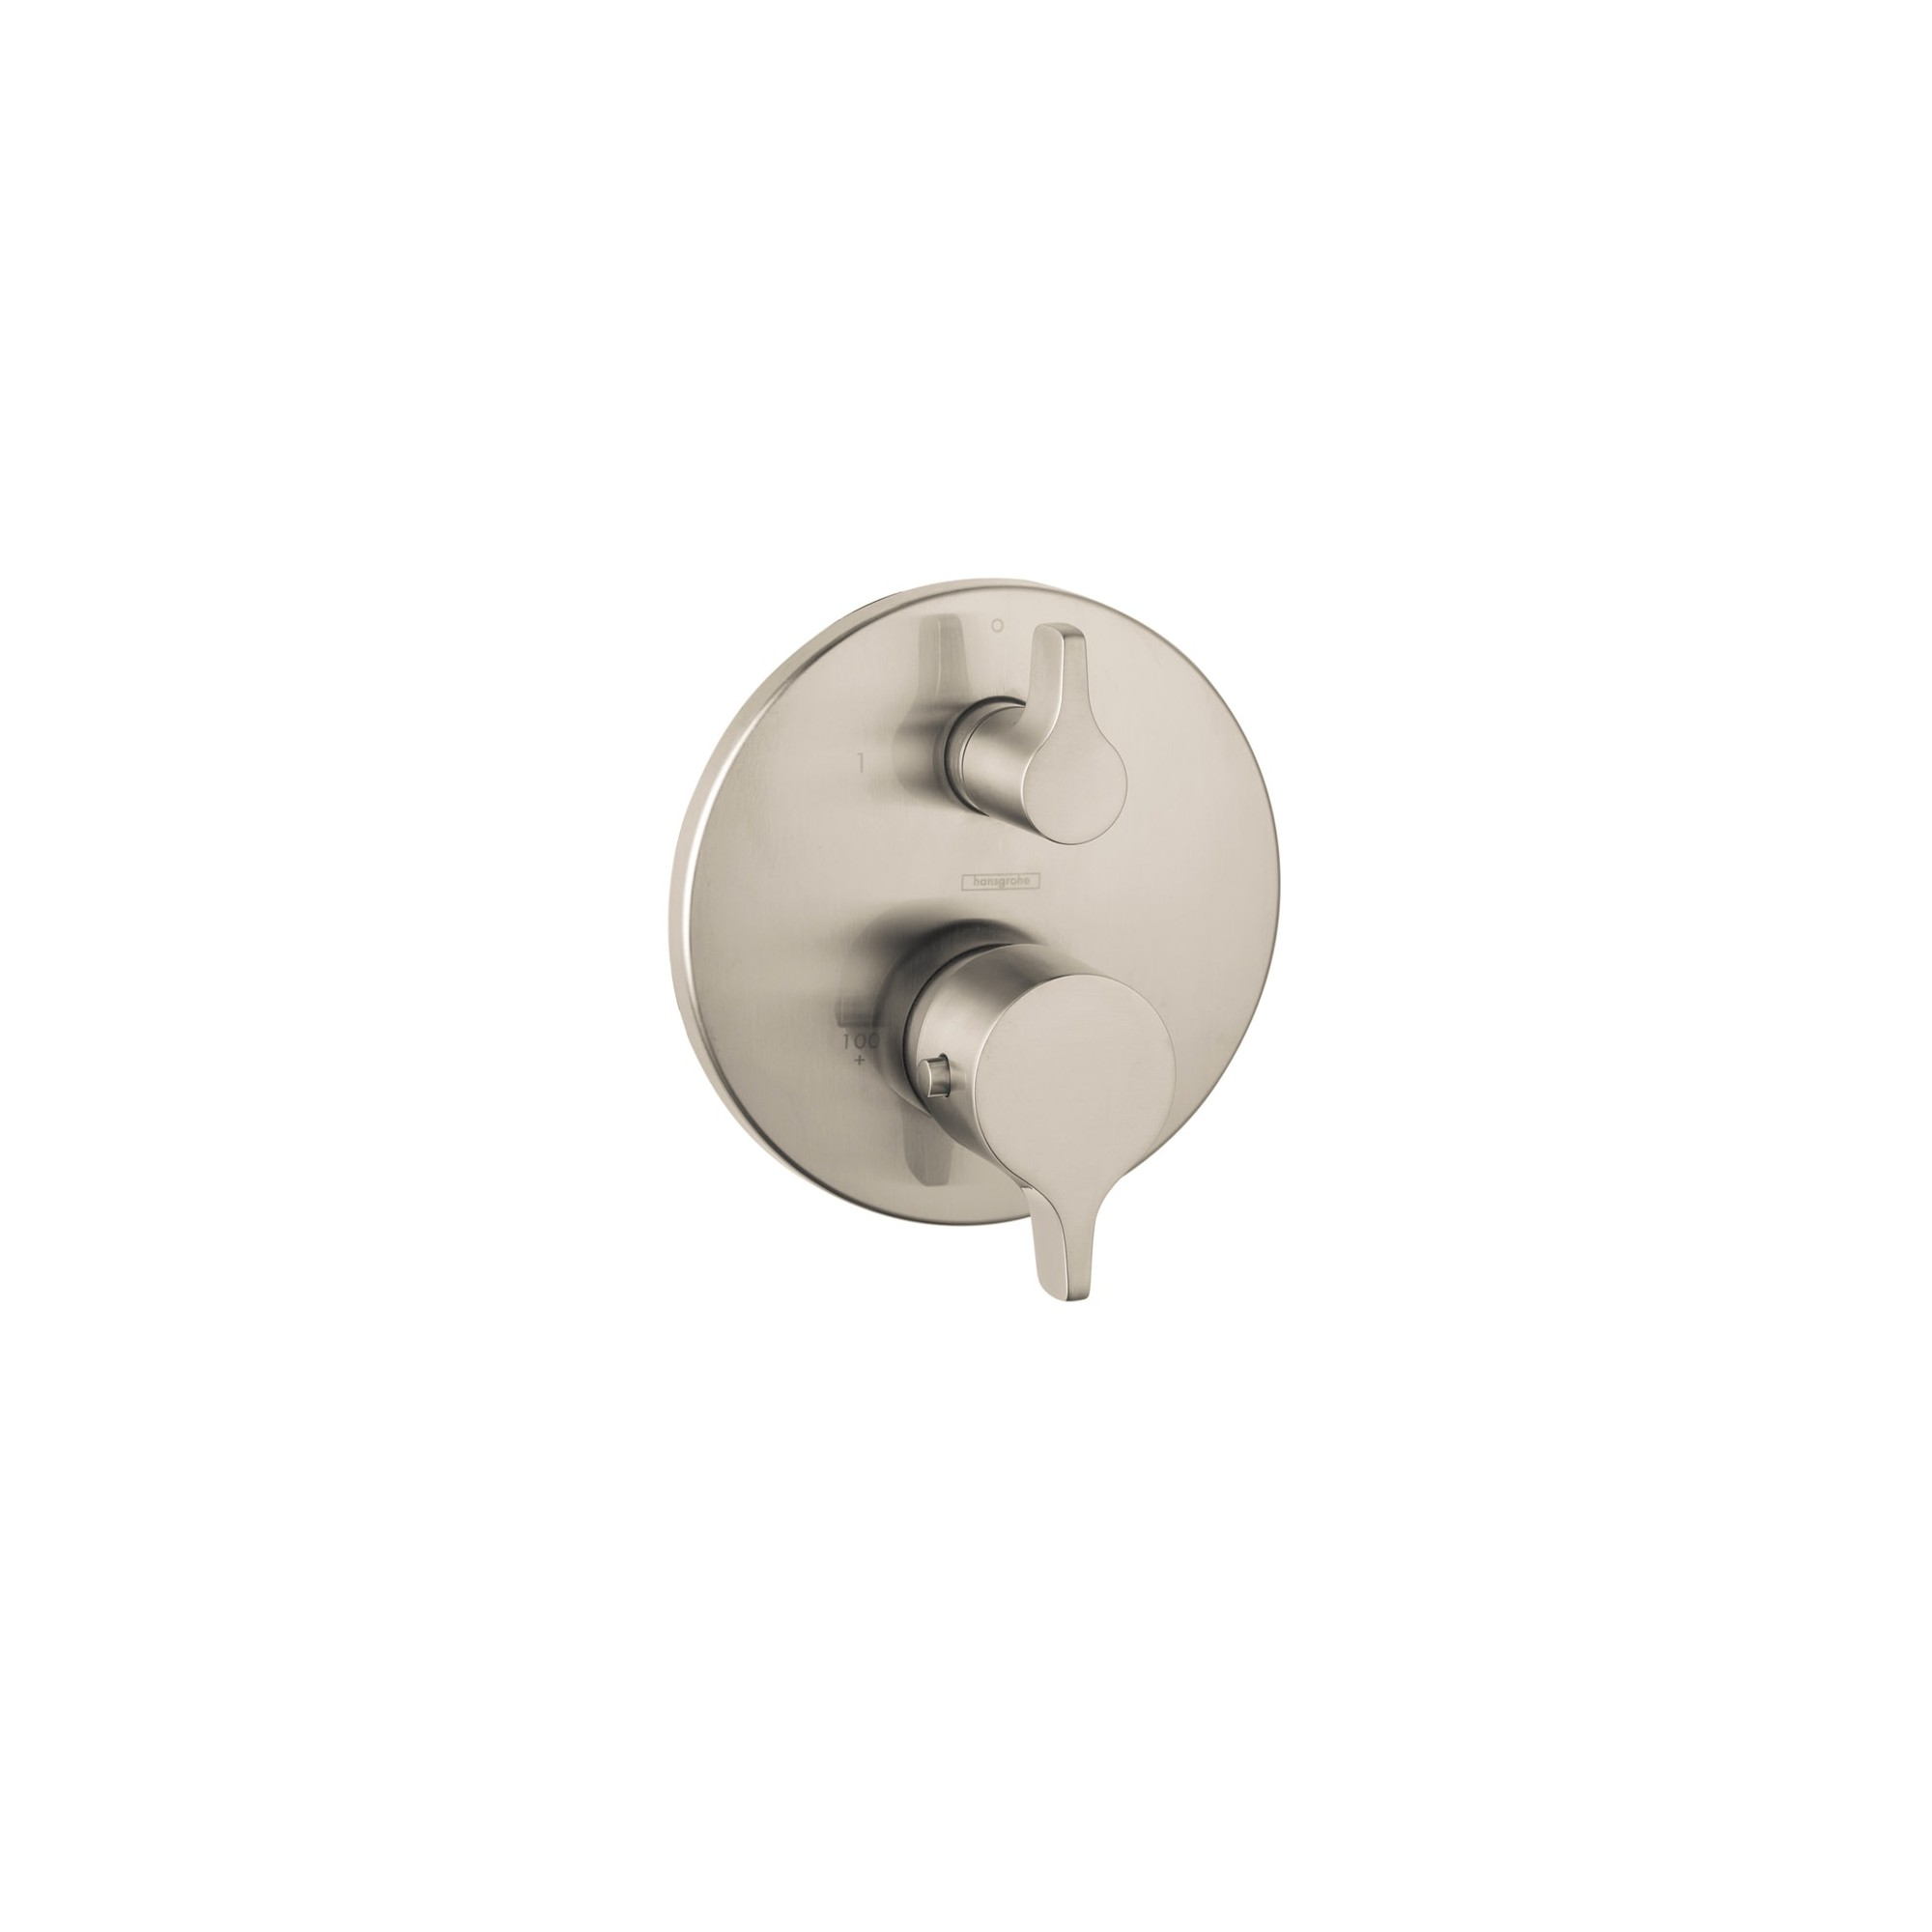 Hansgrohe 4353 S E Thermostatic Valve Trim Brushed Nickel